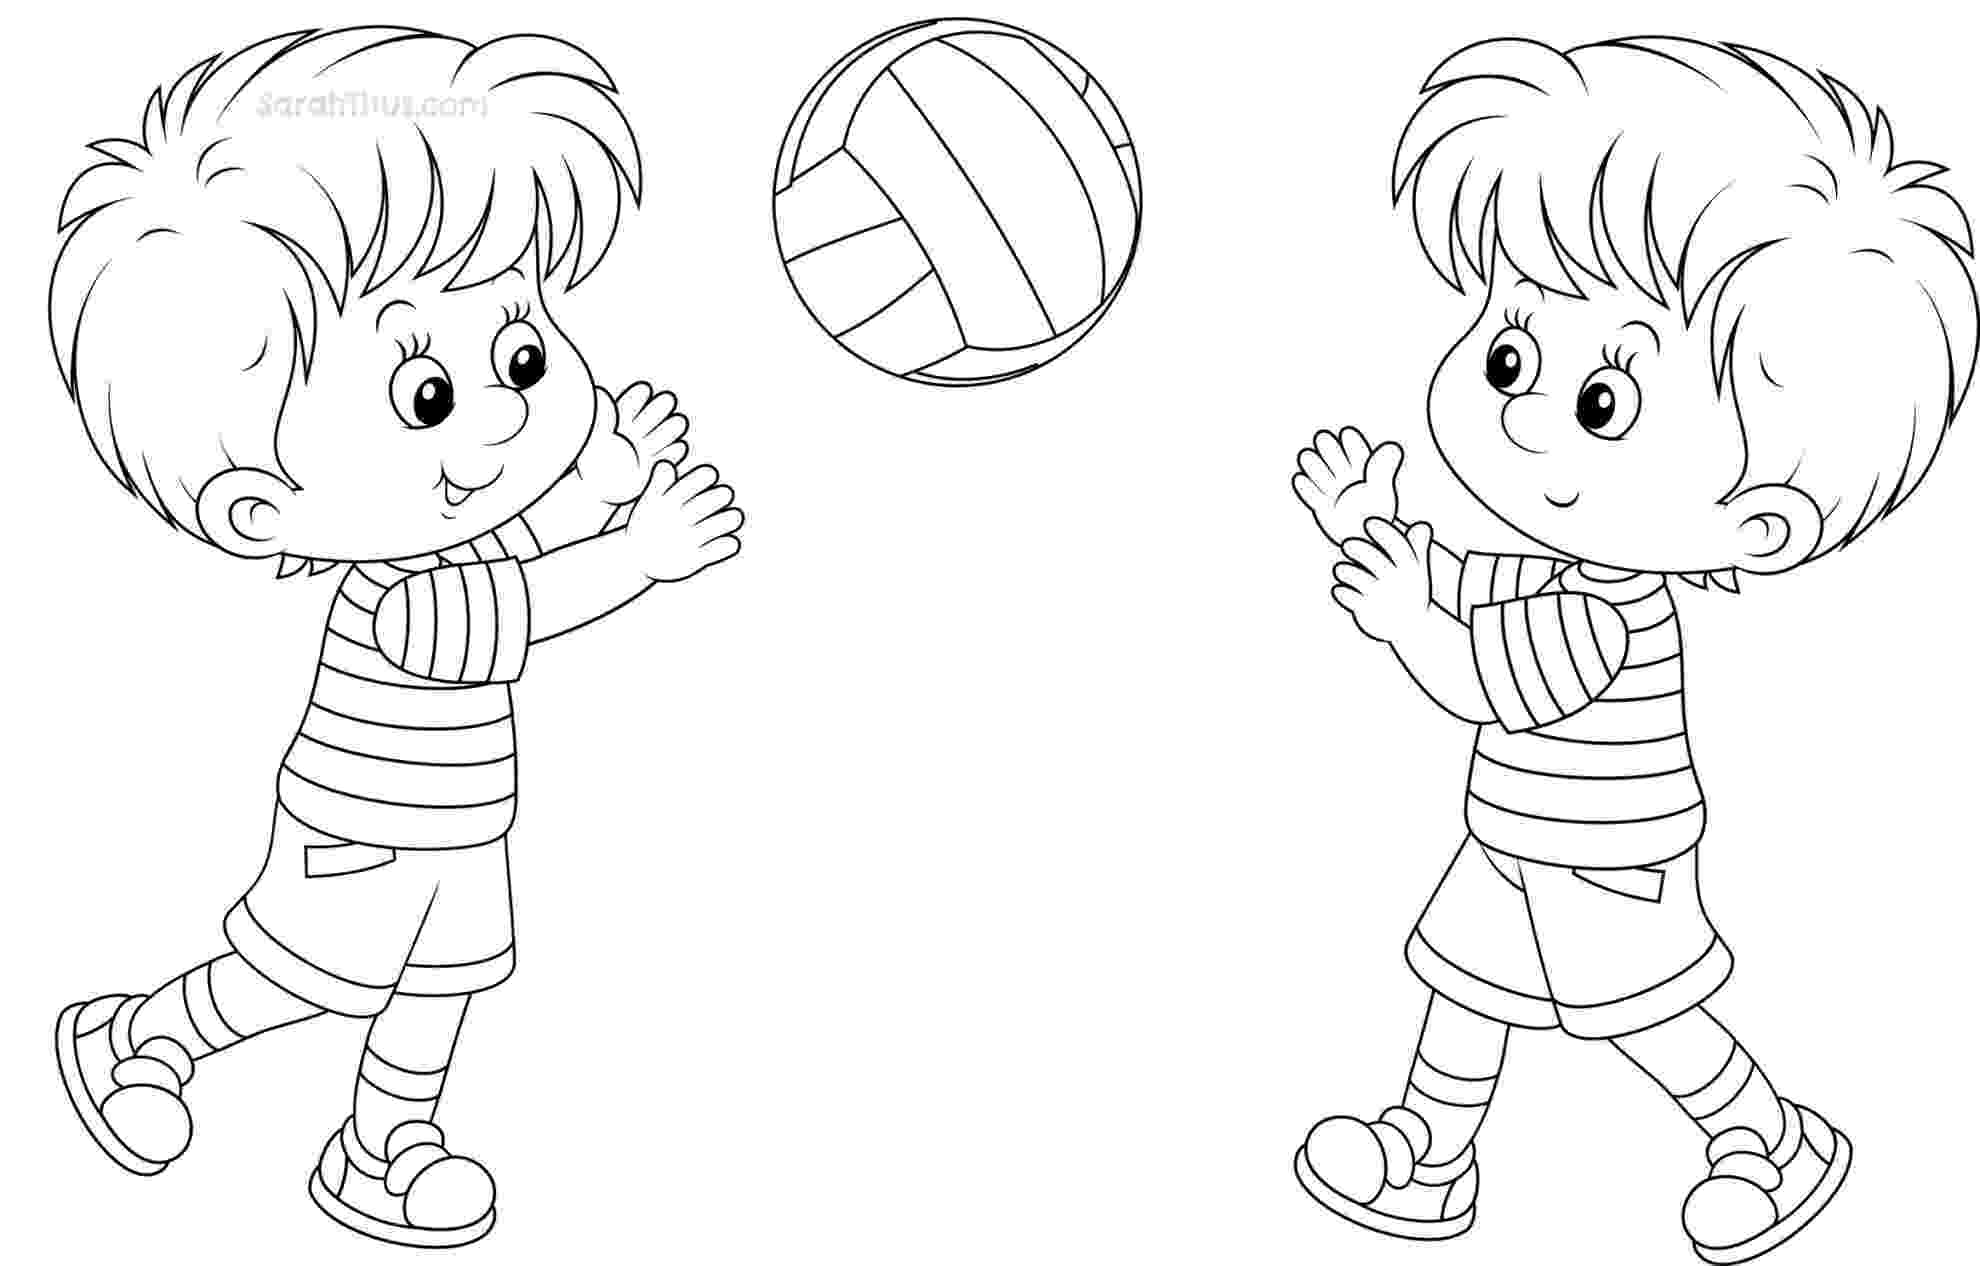 colouring pages for play school top 20 free printable back to school coloring pages online play for school pages colouring